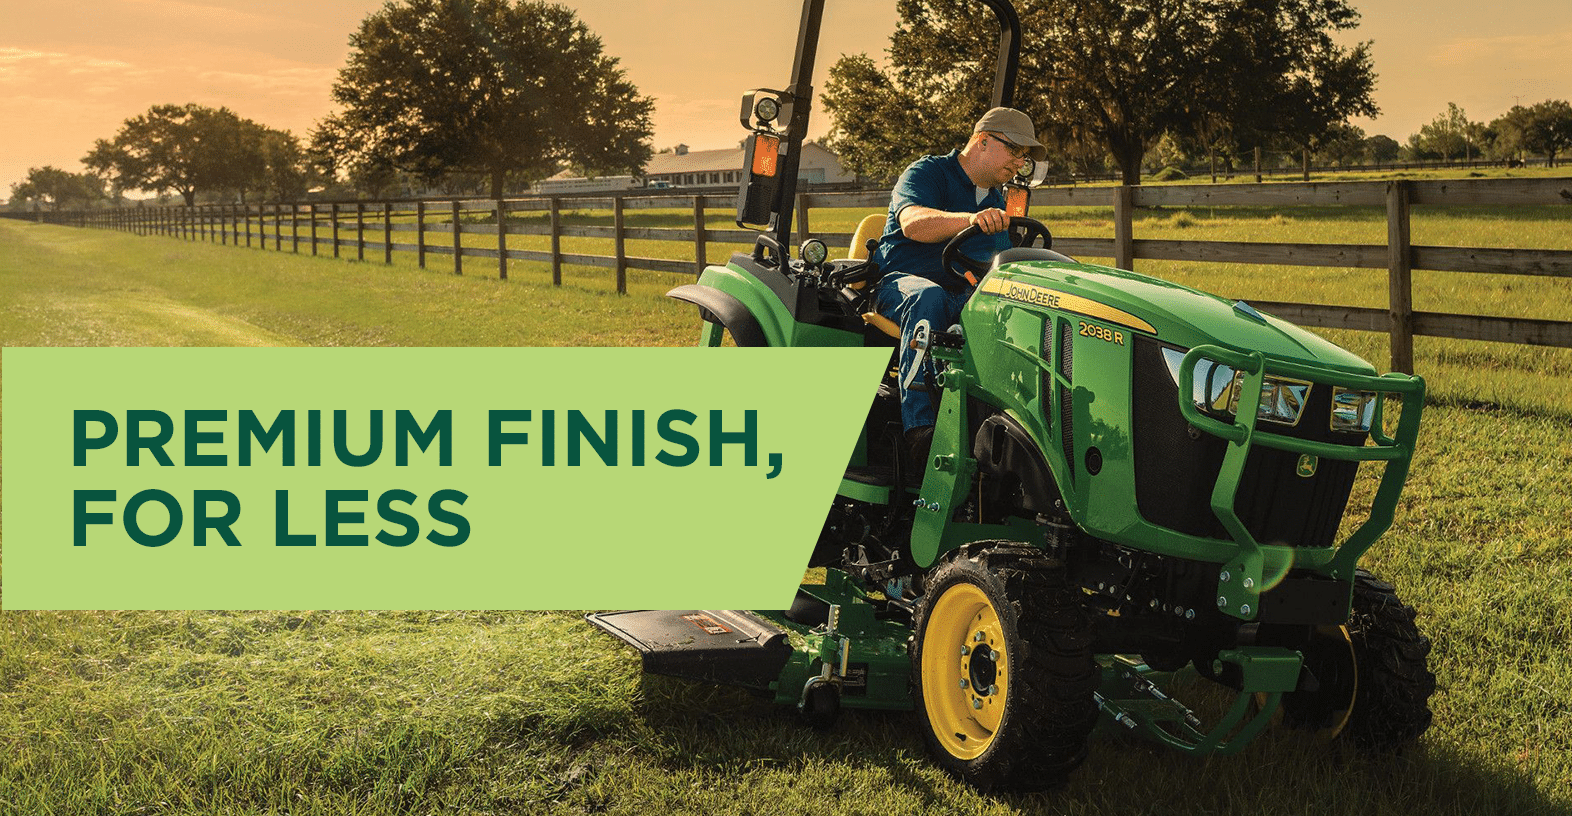 Premium Finish, For Less with a John Deere 2038R